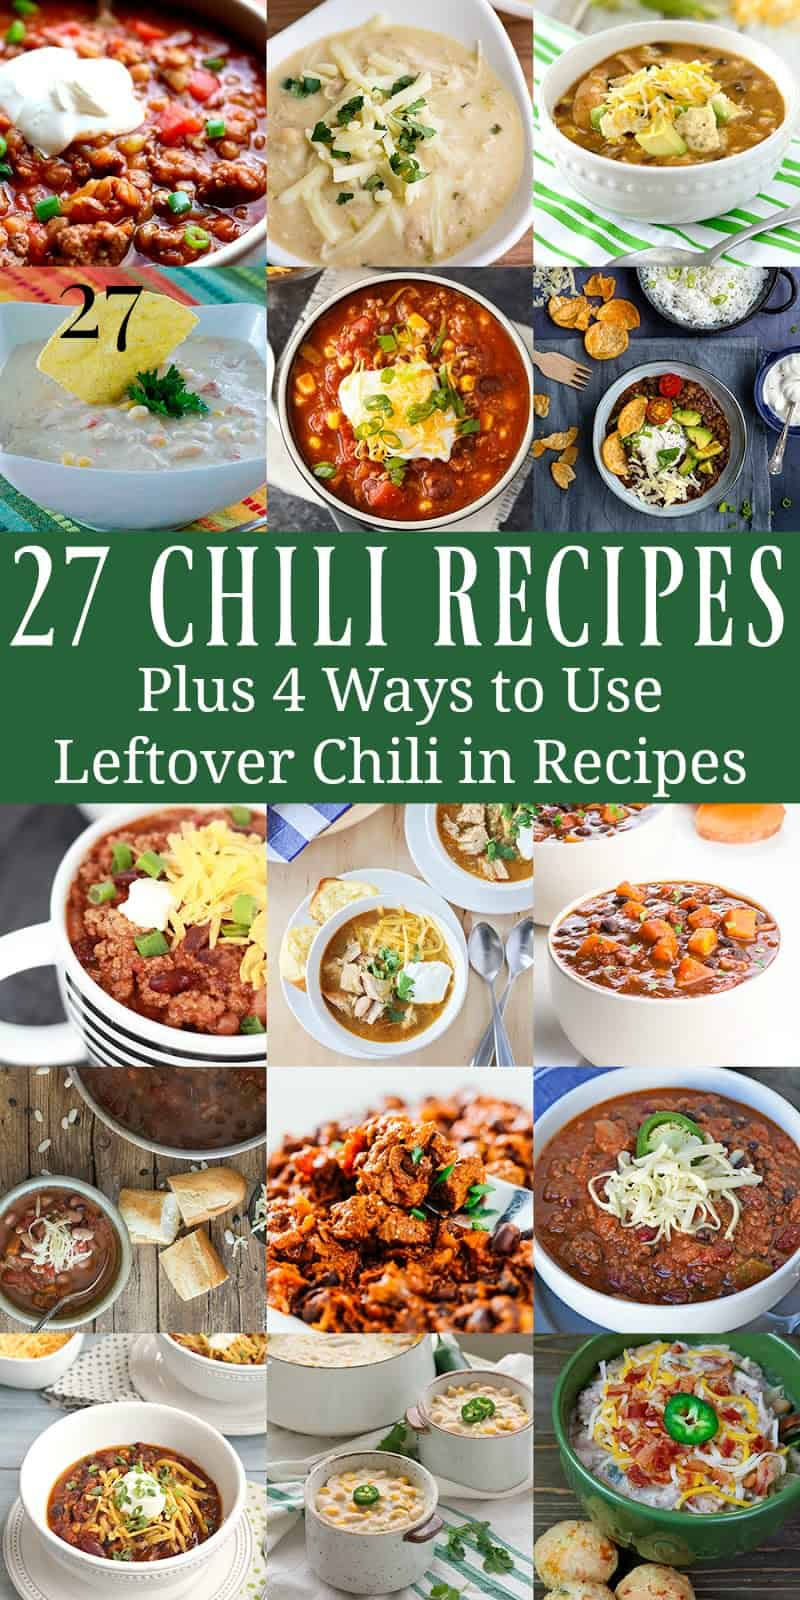 27 chili recipes - plus 4 ways to use leftover chili in recipes